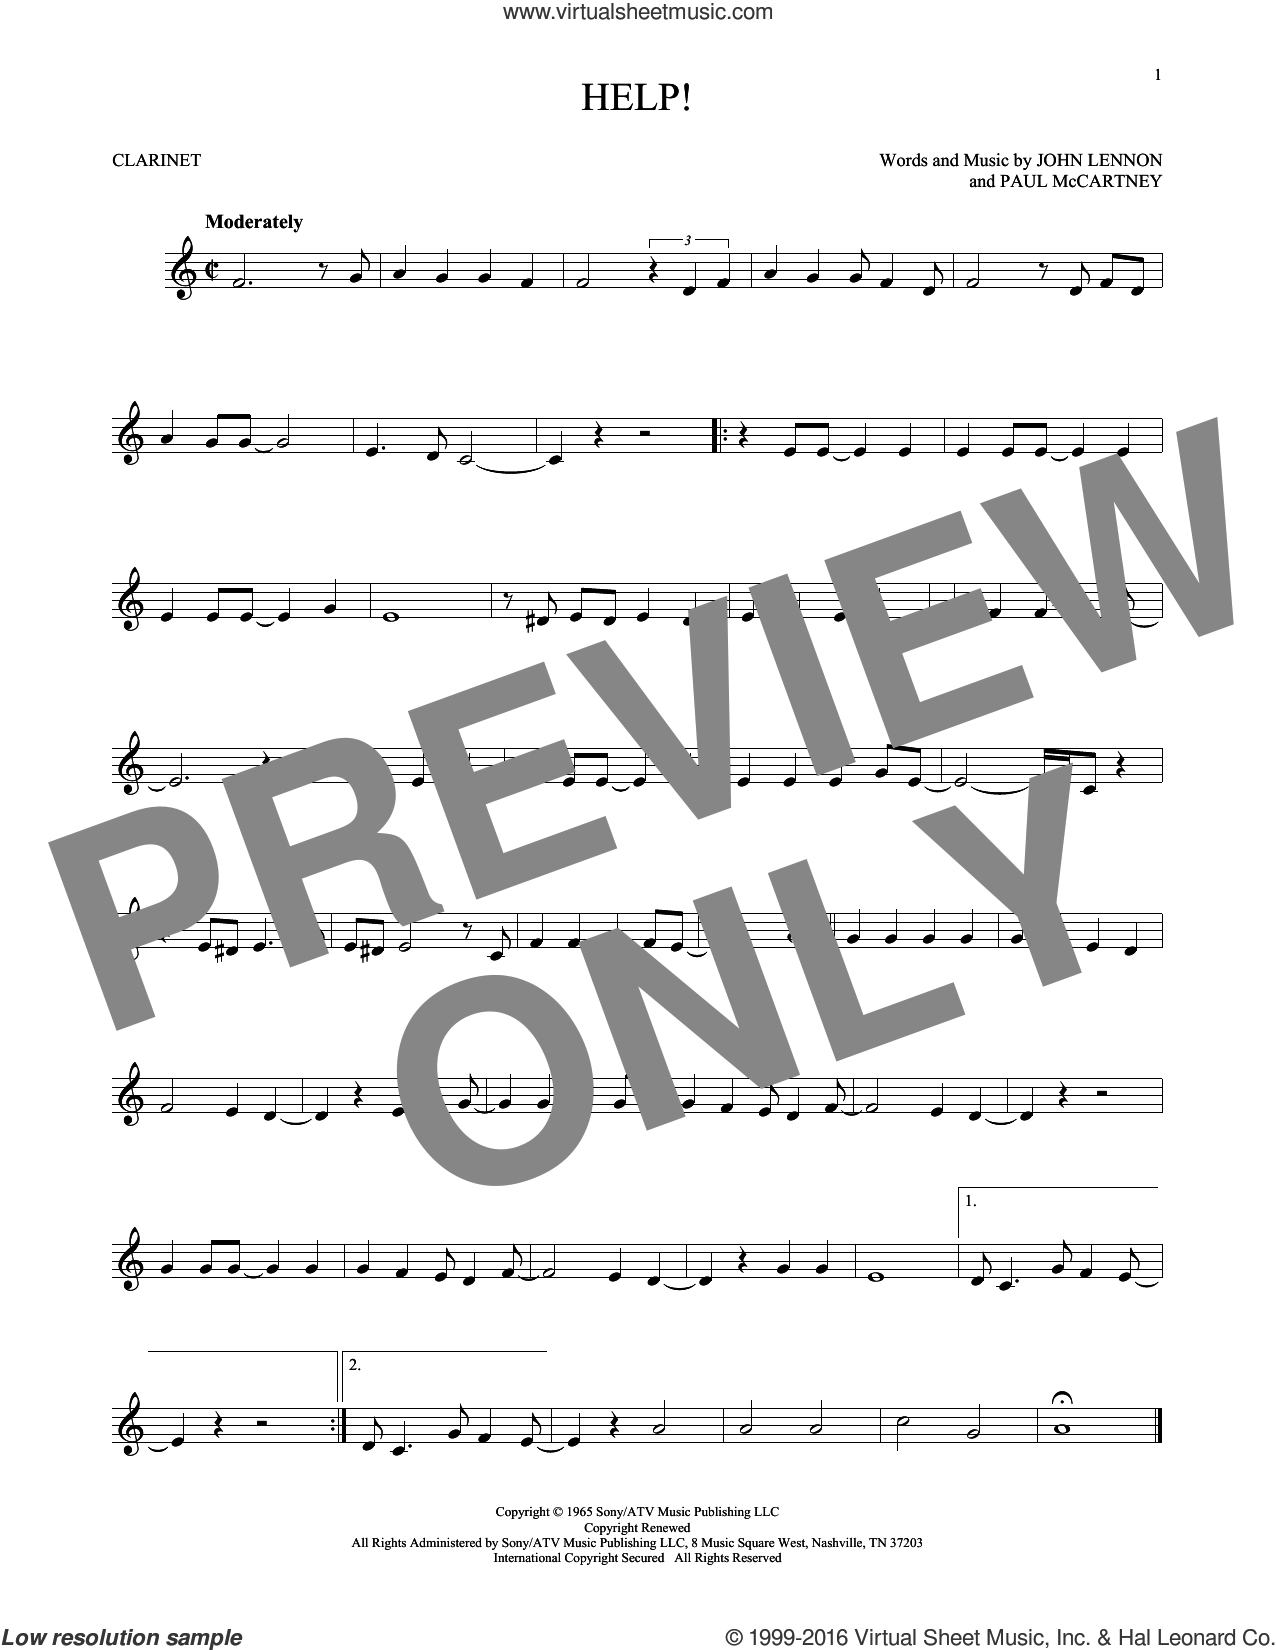 Help! sheet music for clarinet solo by The Beatles, John Lennon and Paul McCartney, intermediate skill level